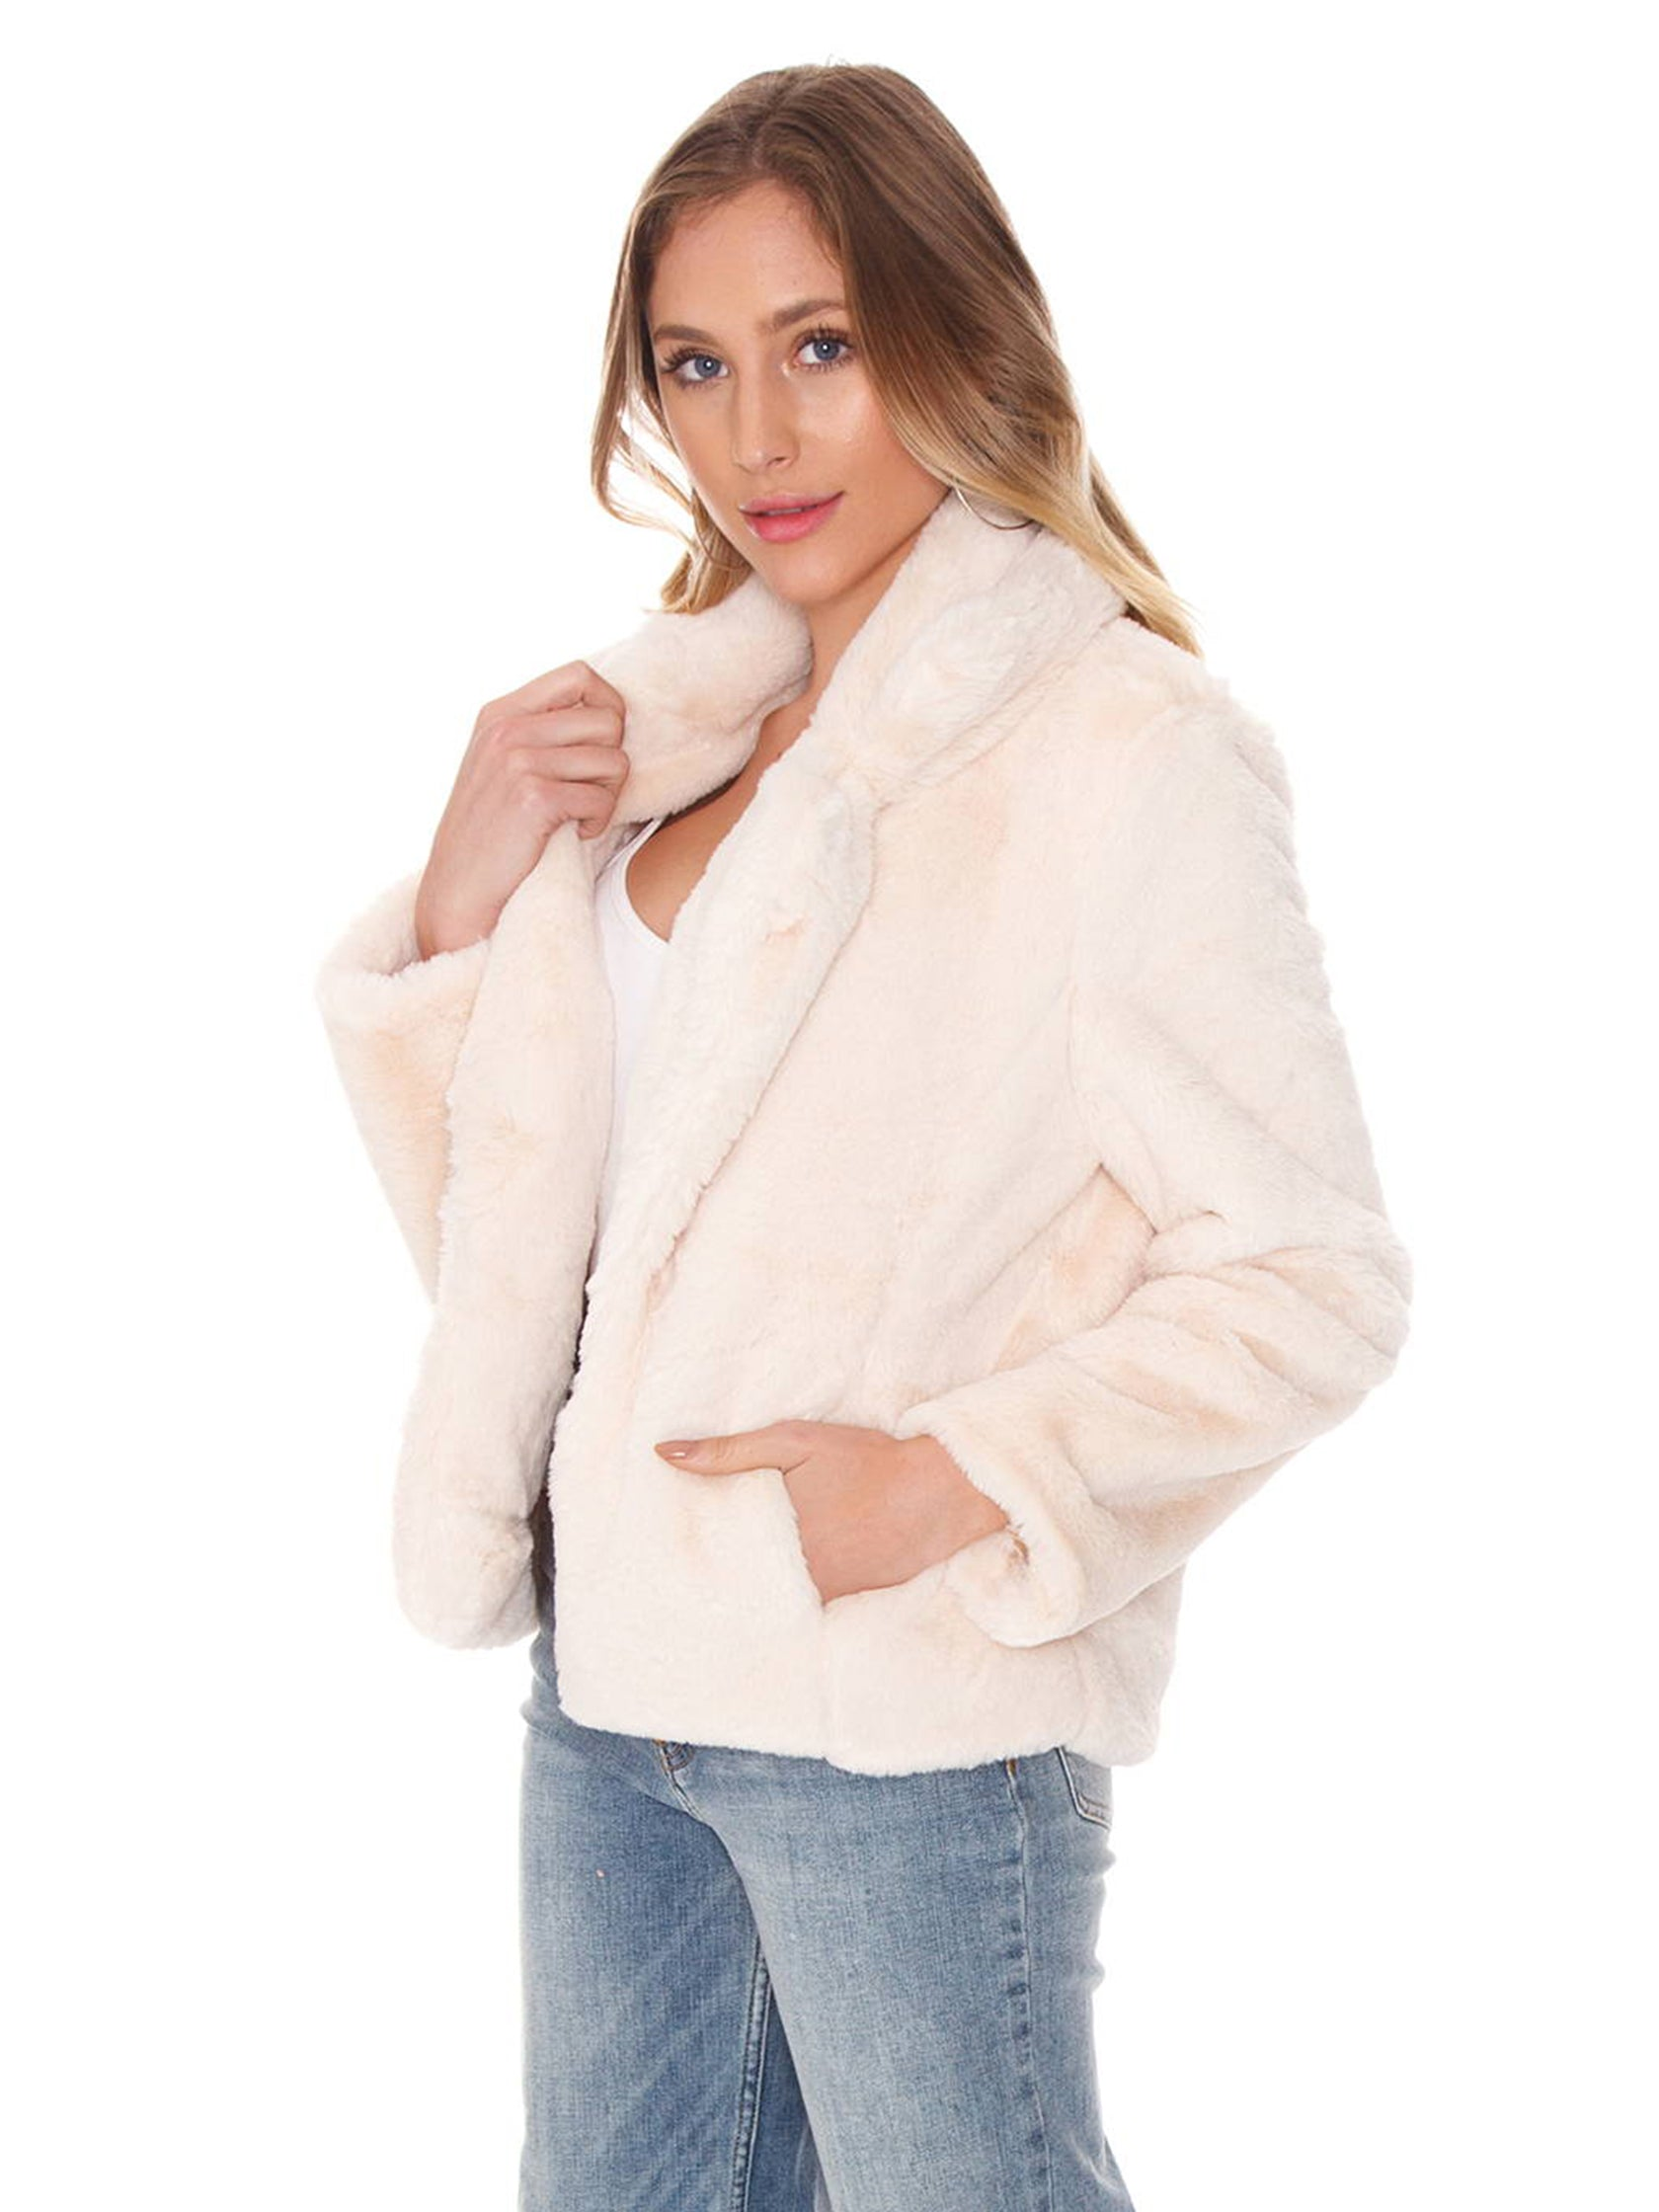 Women wearing a jacket rental from FashionPass called Izzy Faux Fur Jacket